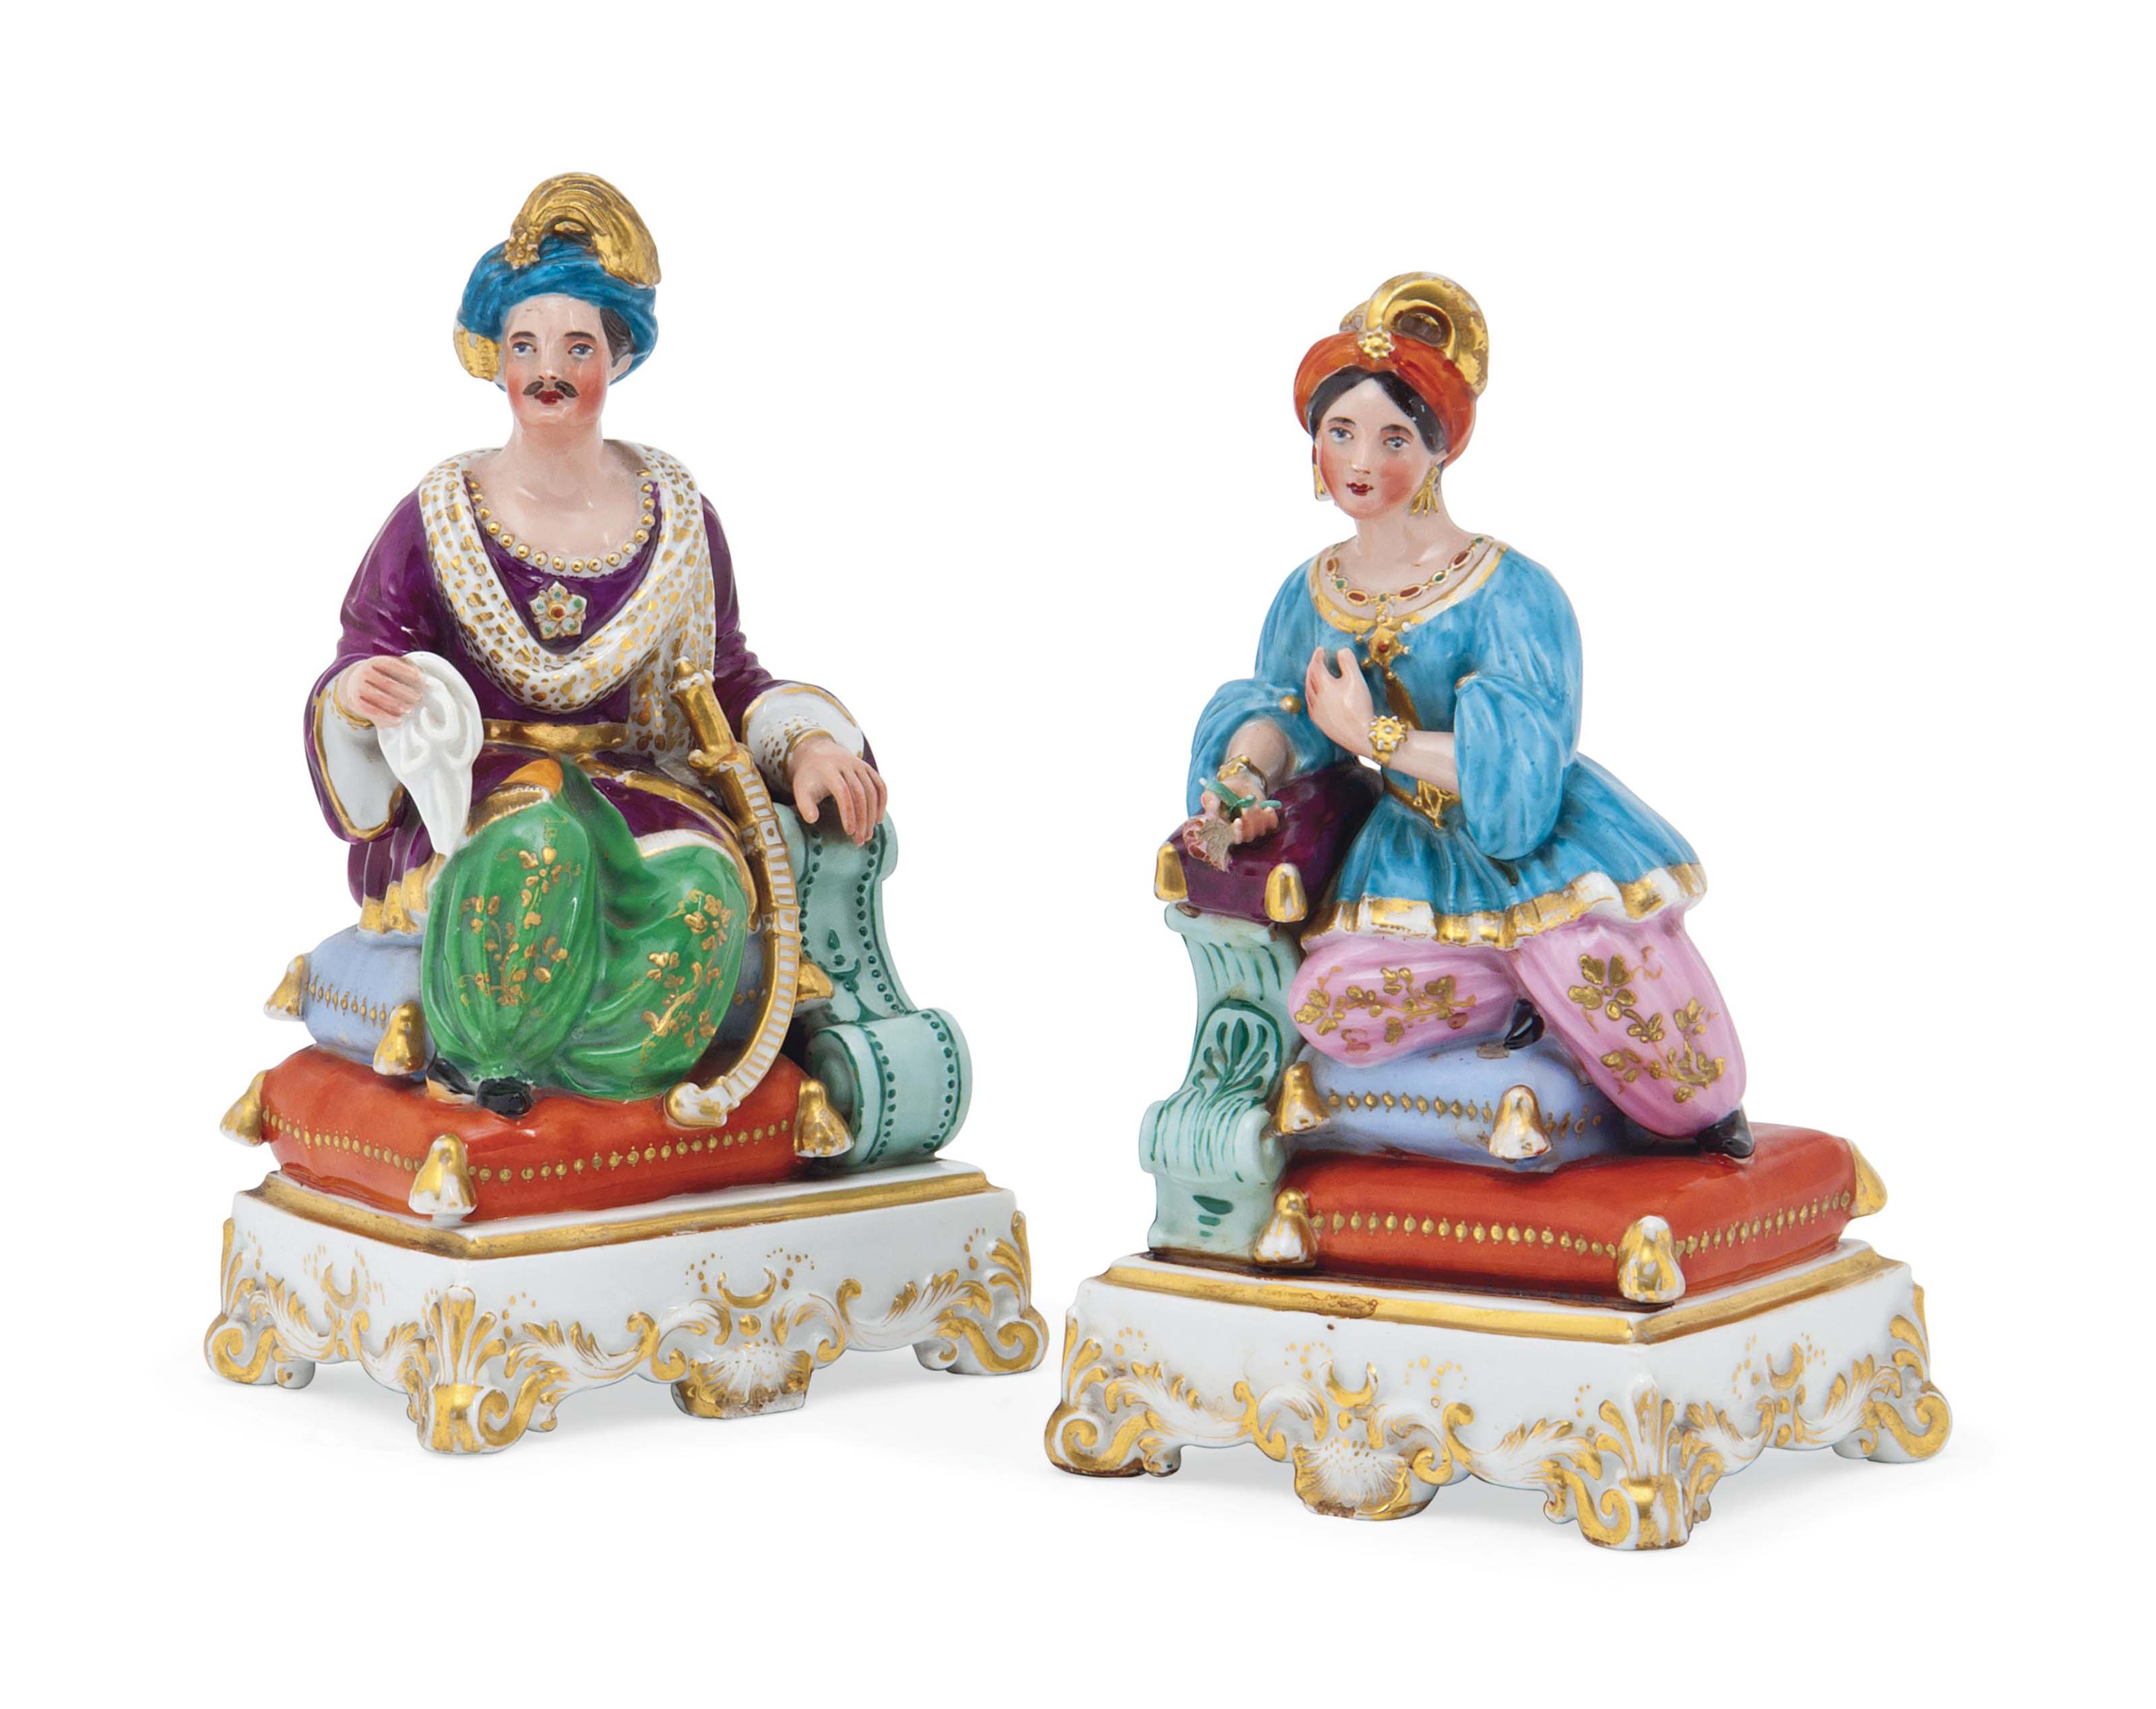 A PAIR OF FRENCH PORCELAIN FIGURAL FLASKS AND STOPPERS